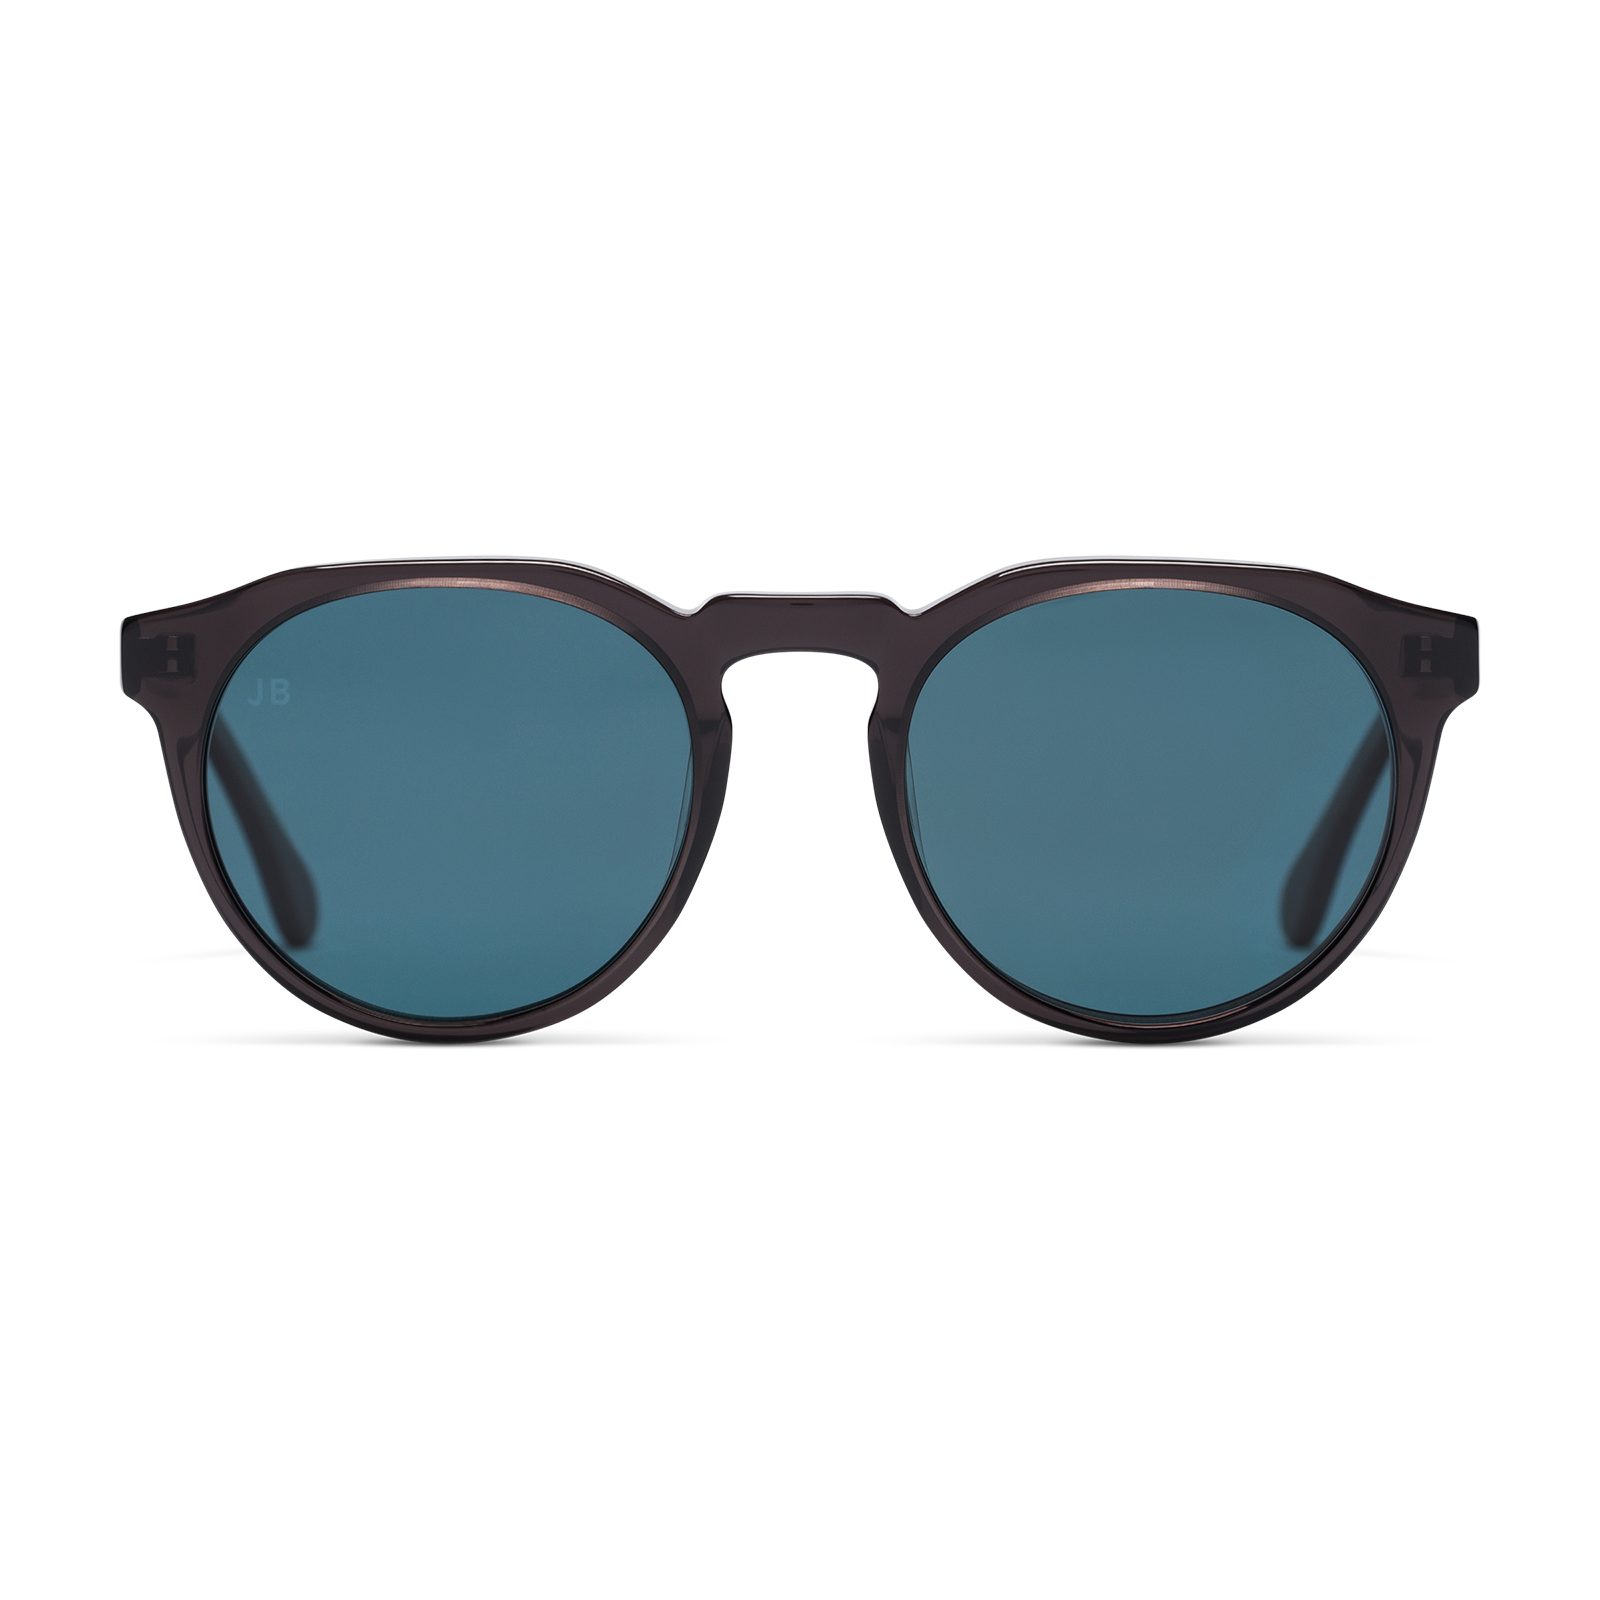 Sunglasses product photo